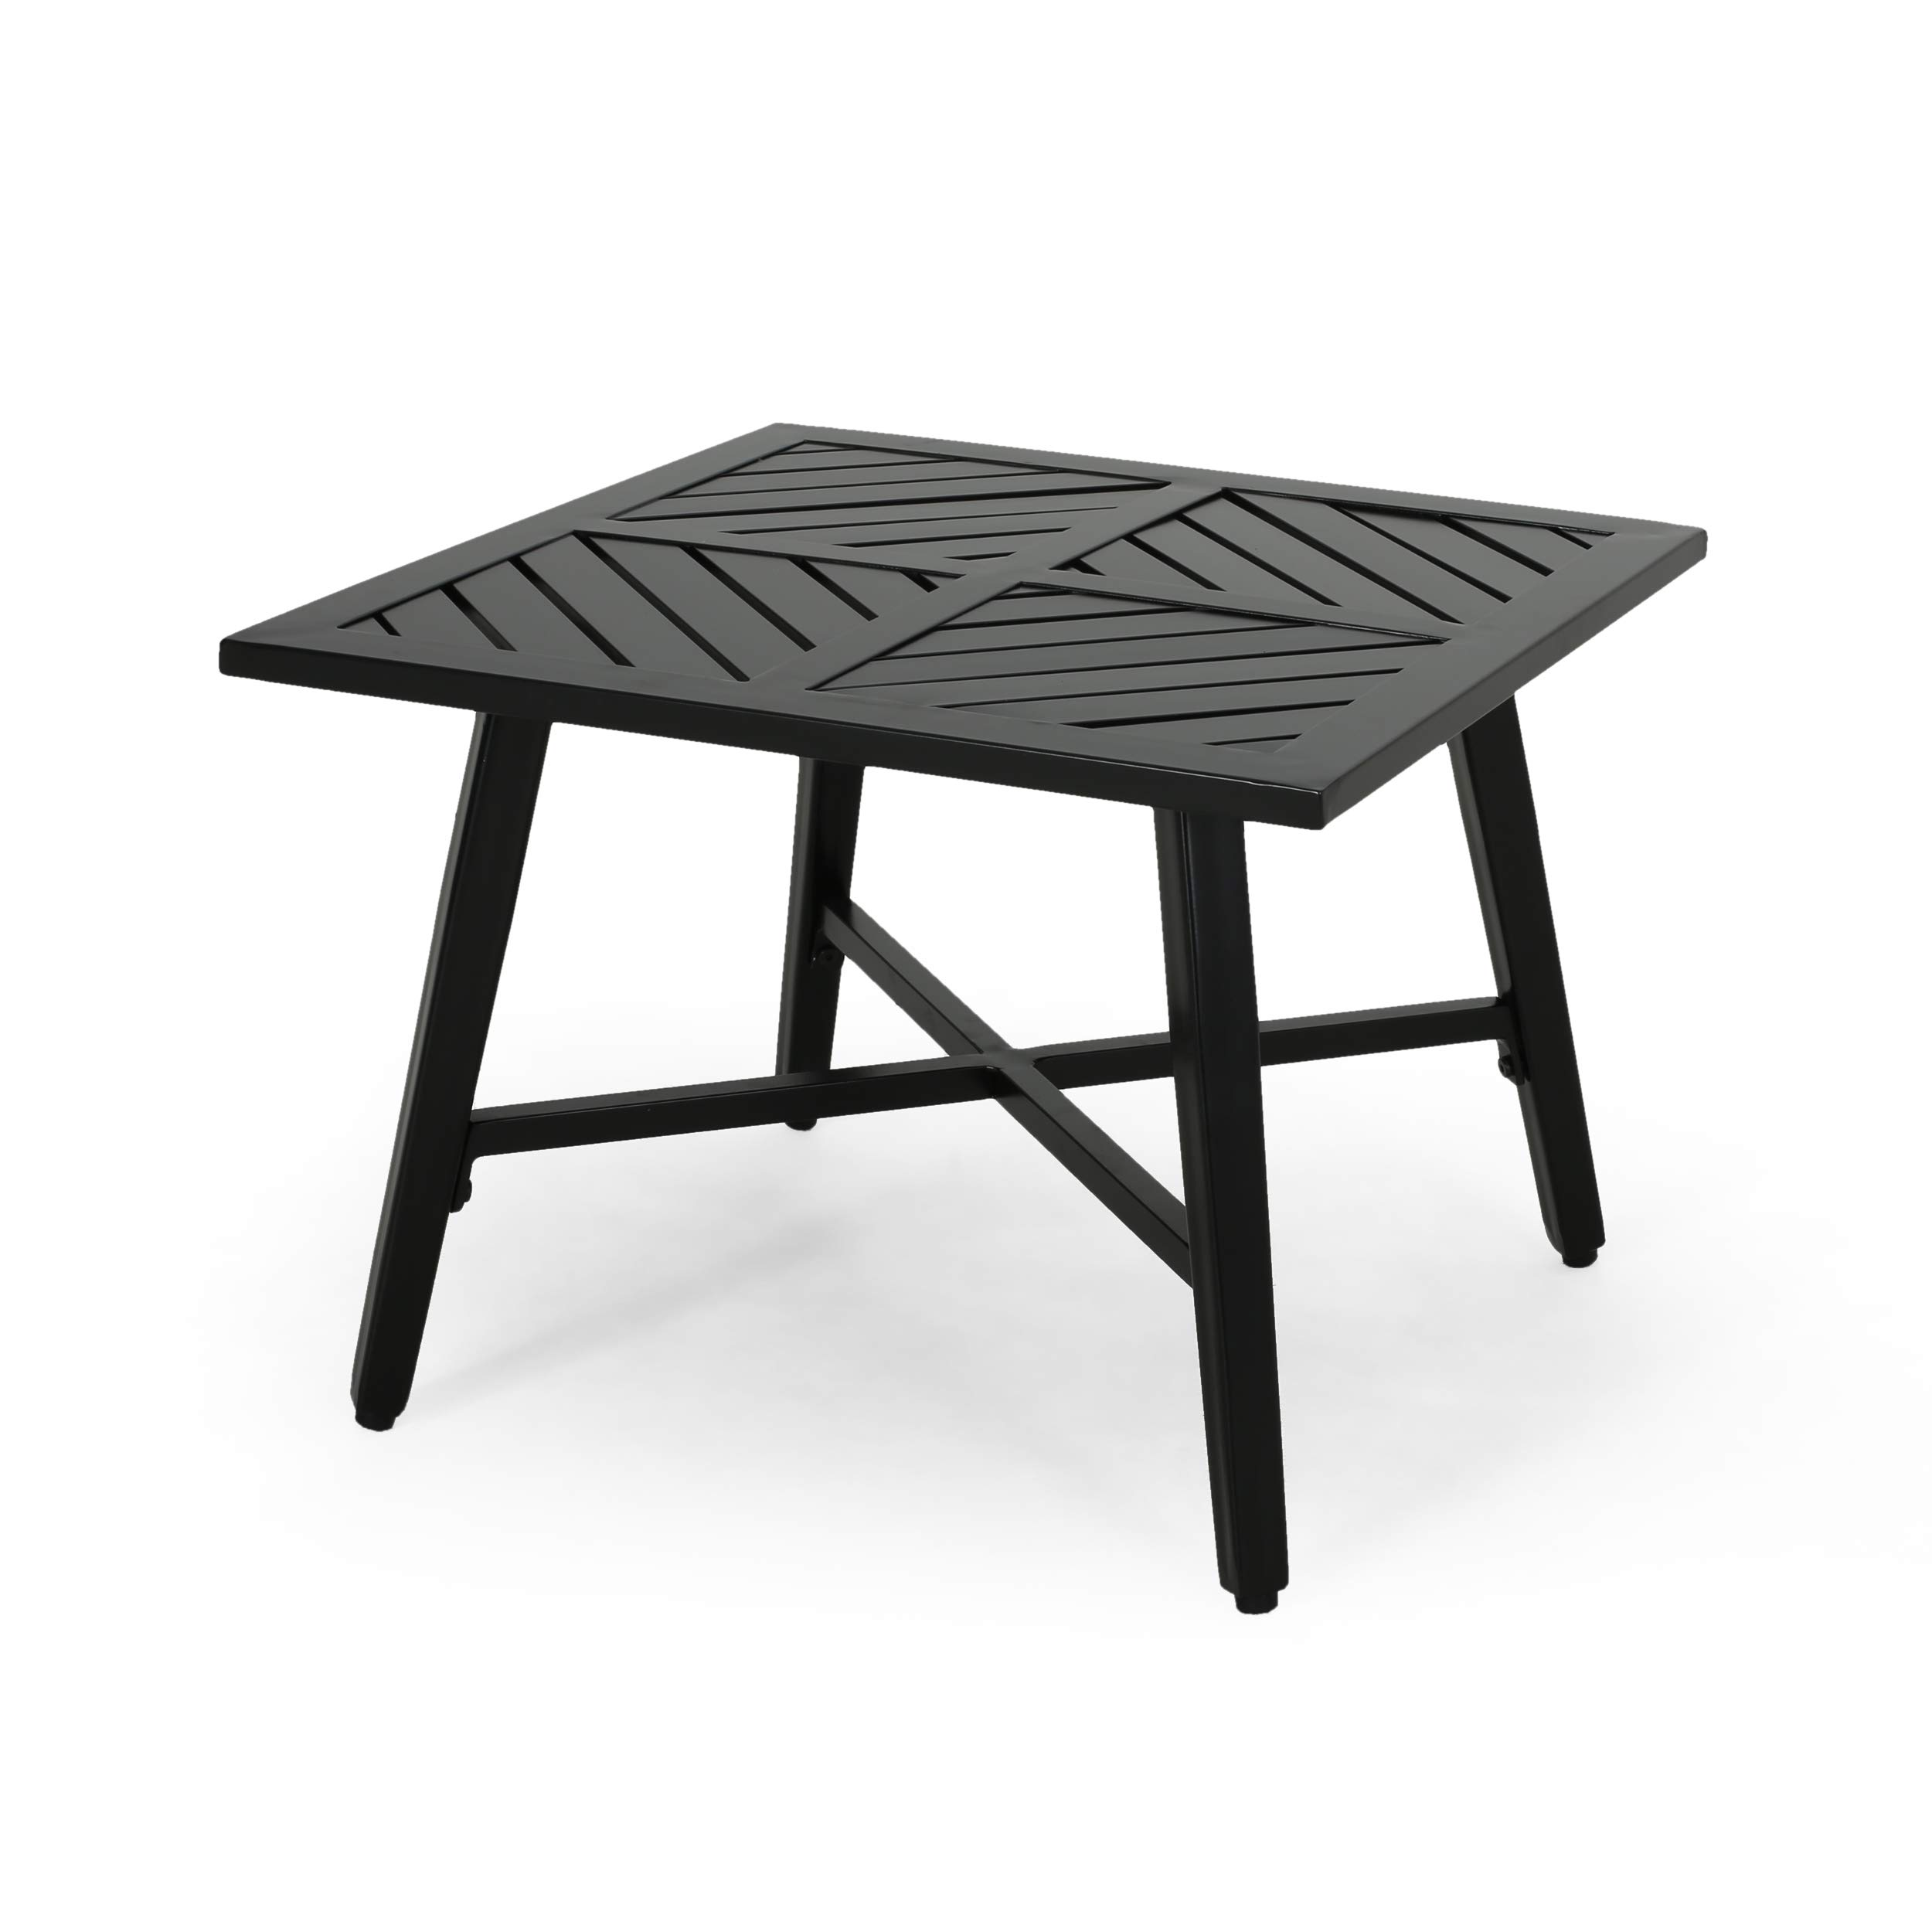 Christopher Knight Home Belle Diego Outdoor Aluminum Side Table, Matte Black